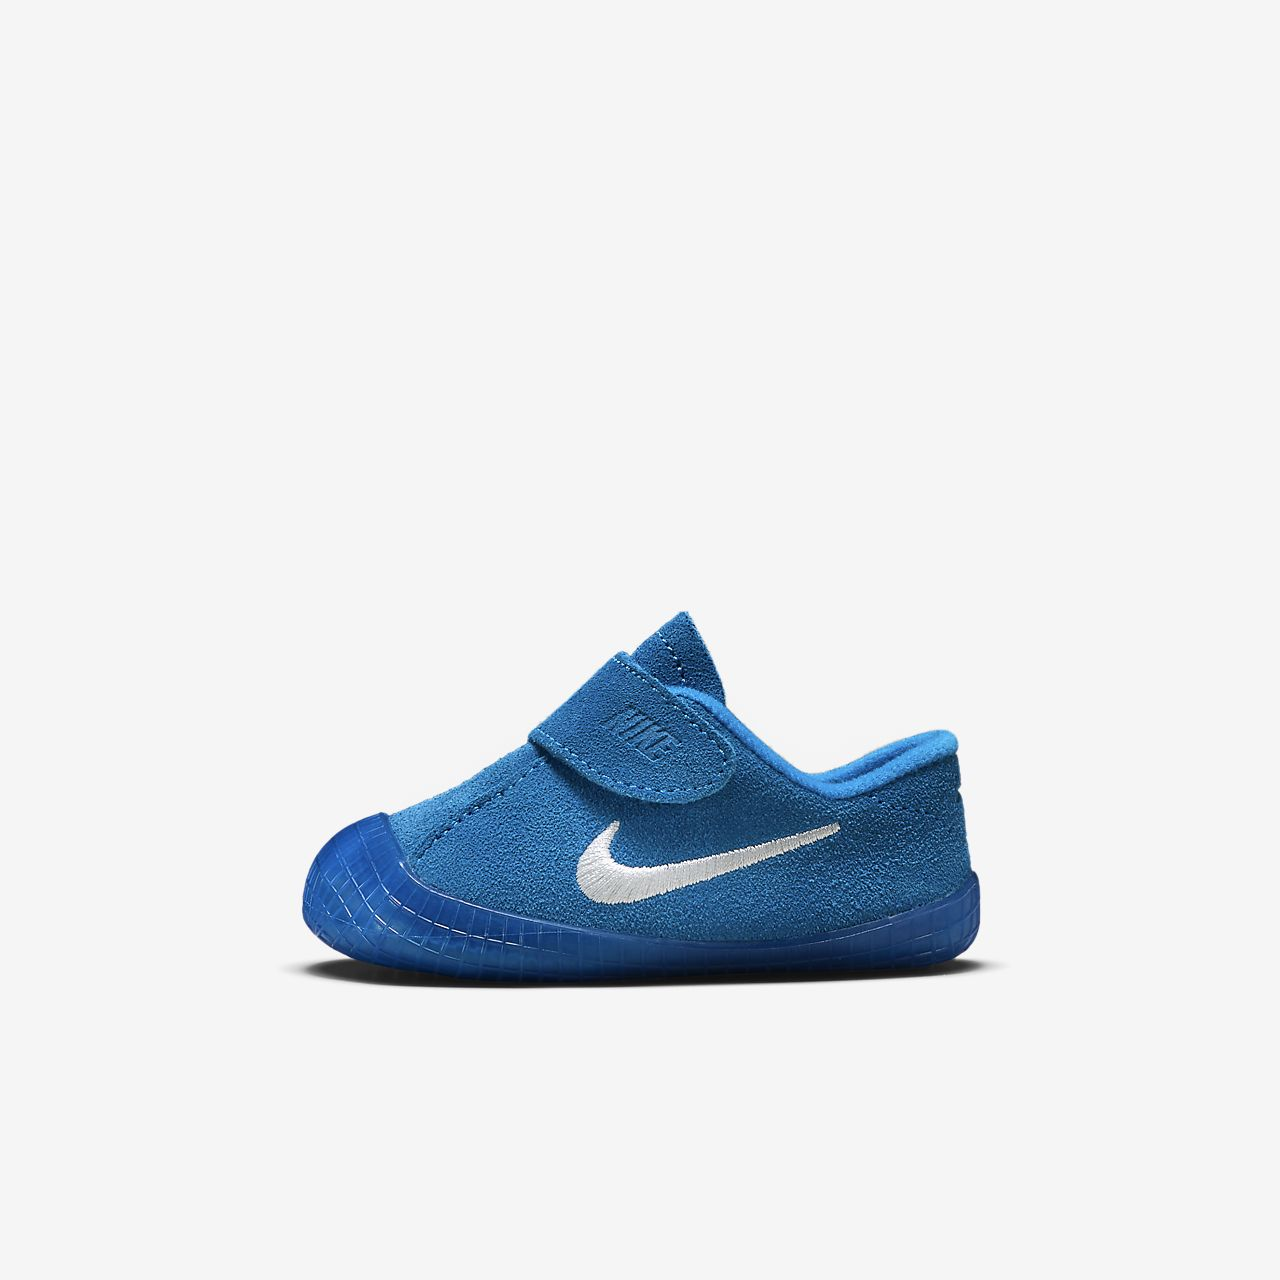 new product ab403 93586 Nike Waffle 1 Baby  Toddler Bootie. Nike.com GB